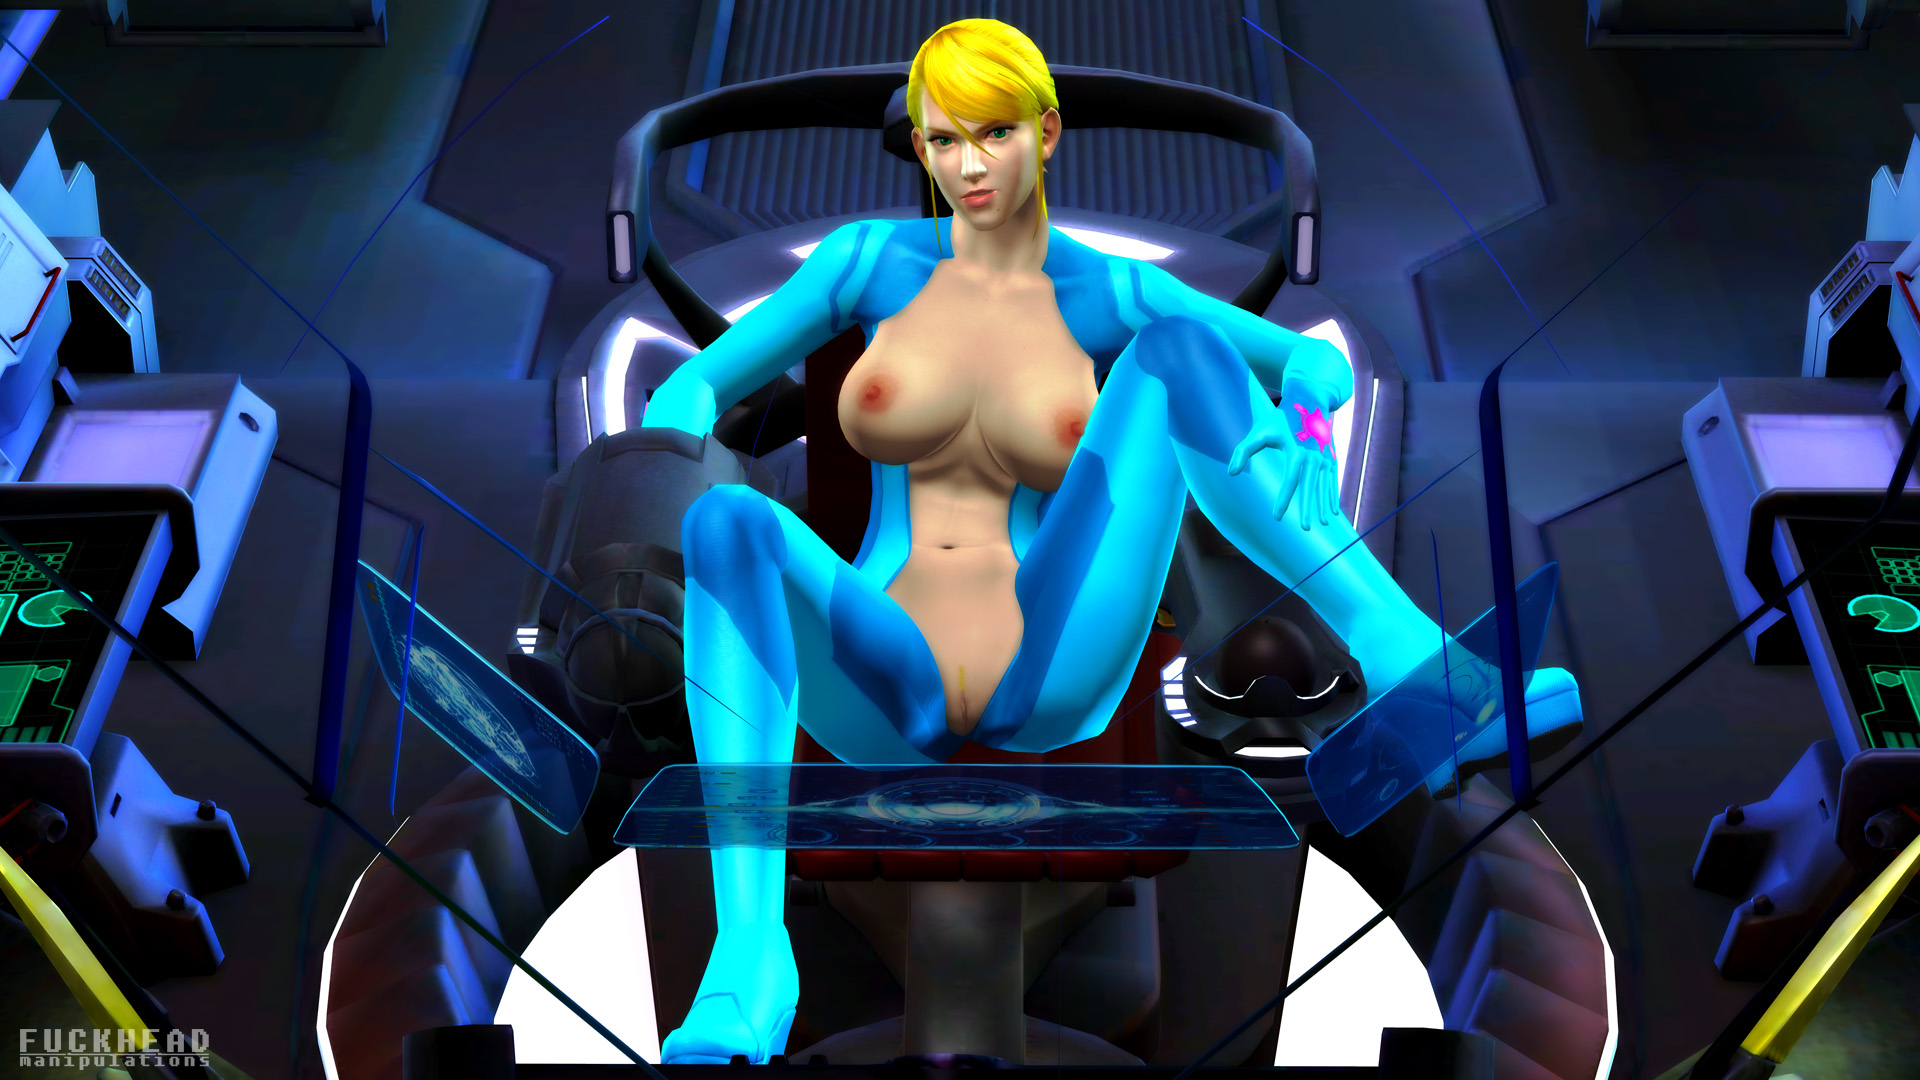 Metroid nackt sex erotic photo